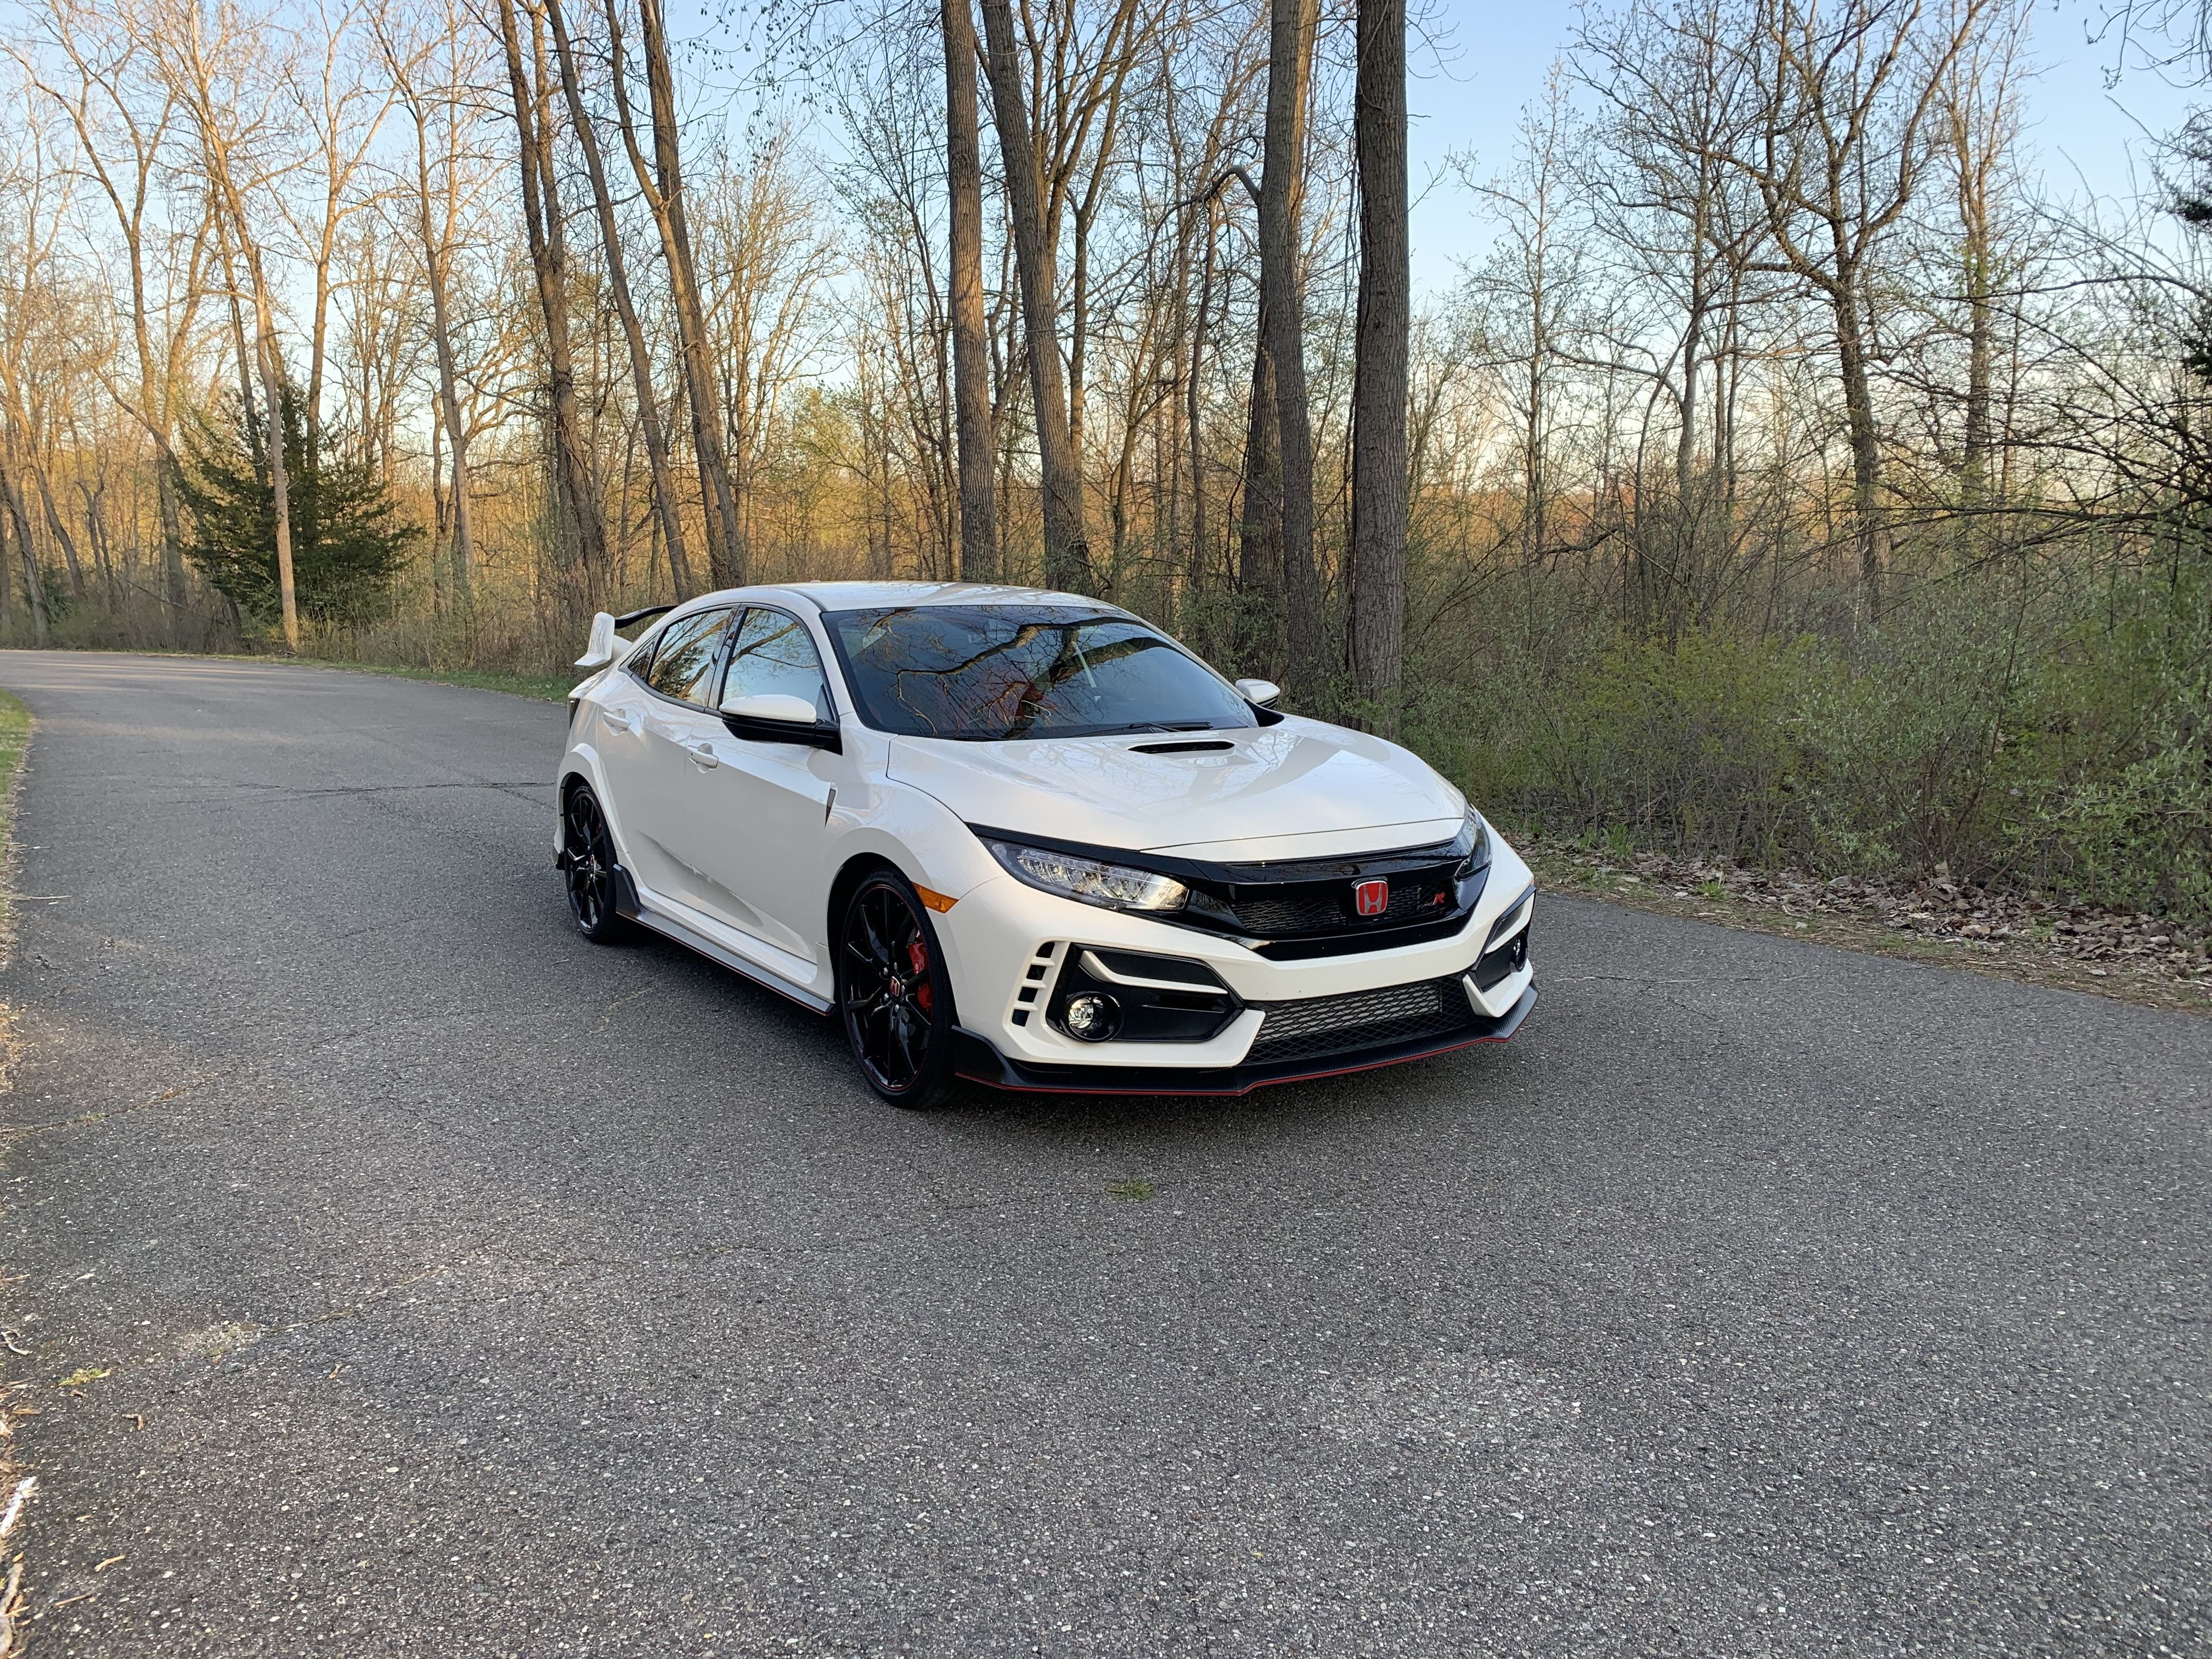 2020 Honda Civic Type R Gets New Tech But Retains All Its Driver Engagement